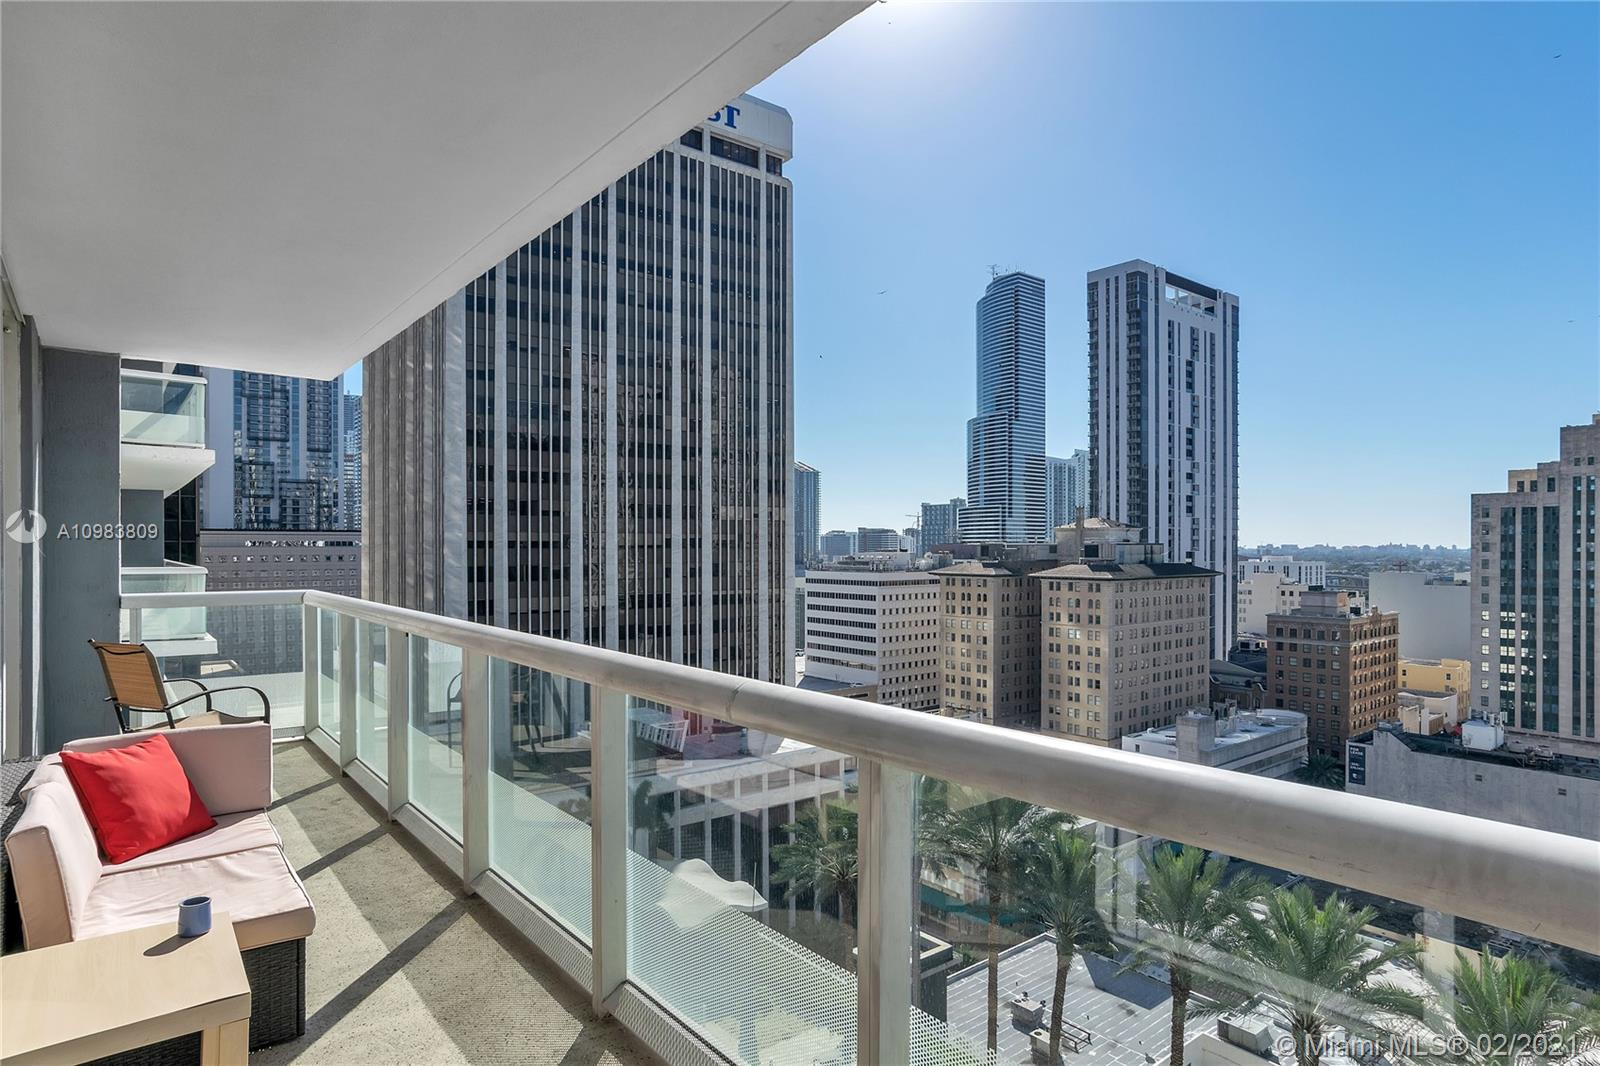 50 Biscayne is the iconic building in every picture of the Miami downtown's  skyline, The unit is a 1 bedroom plus den, floor to ceiling impact window, Amenities include  Heated pool state of the art spa, private fitness room conference room, security 24 hours plus lobby attendance concierge, valet parking 